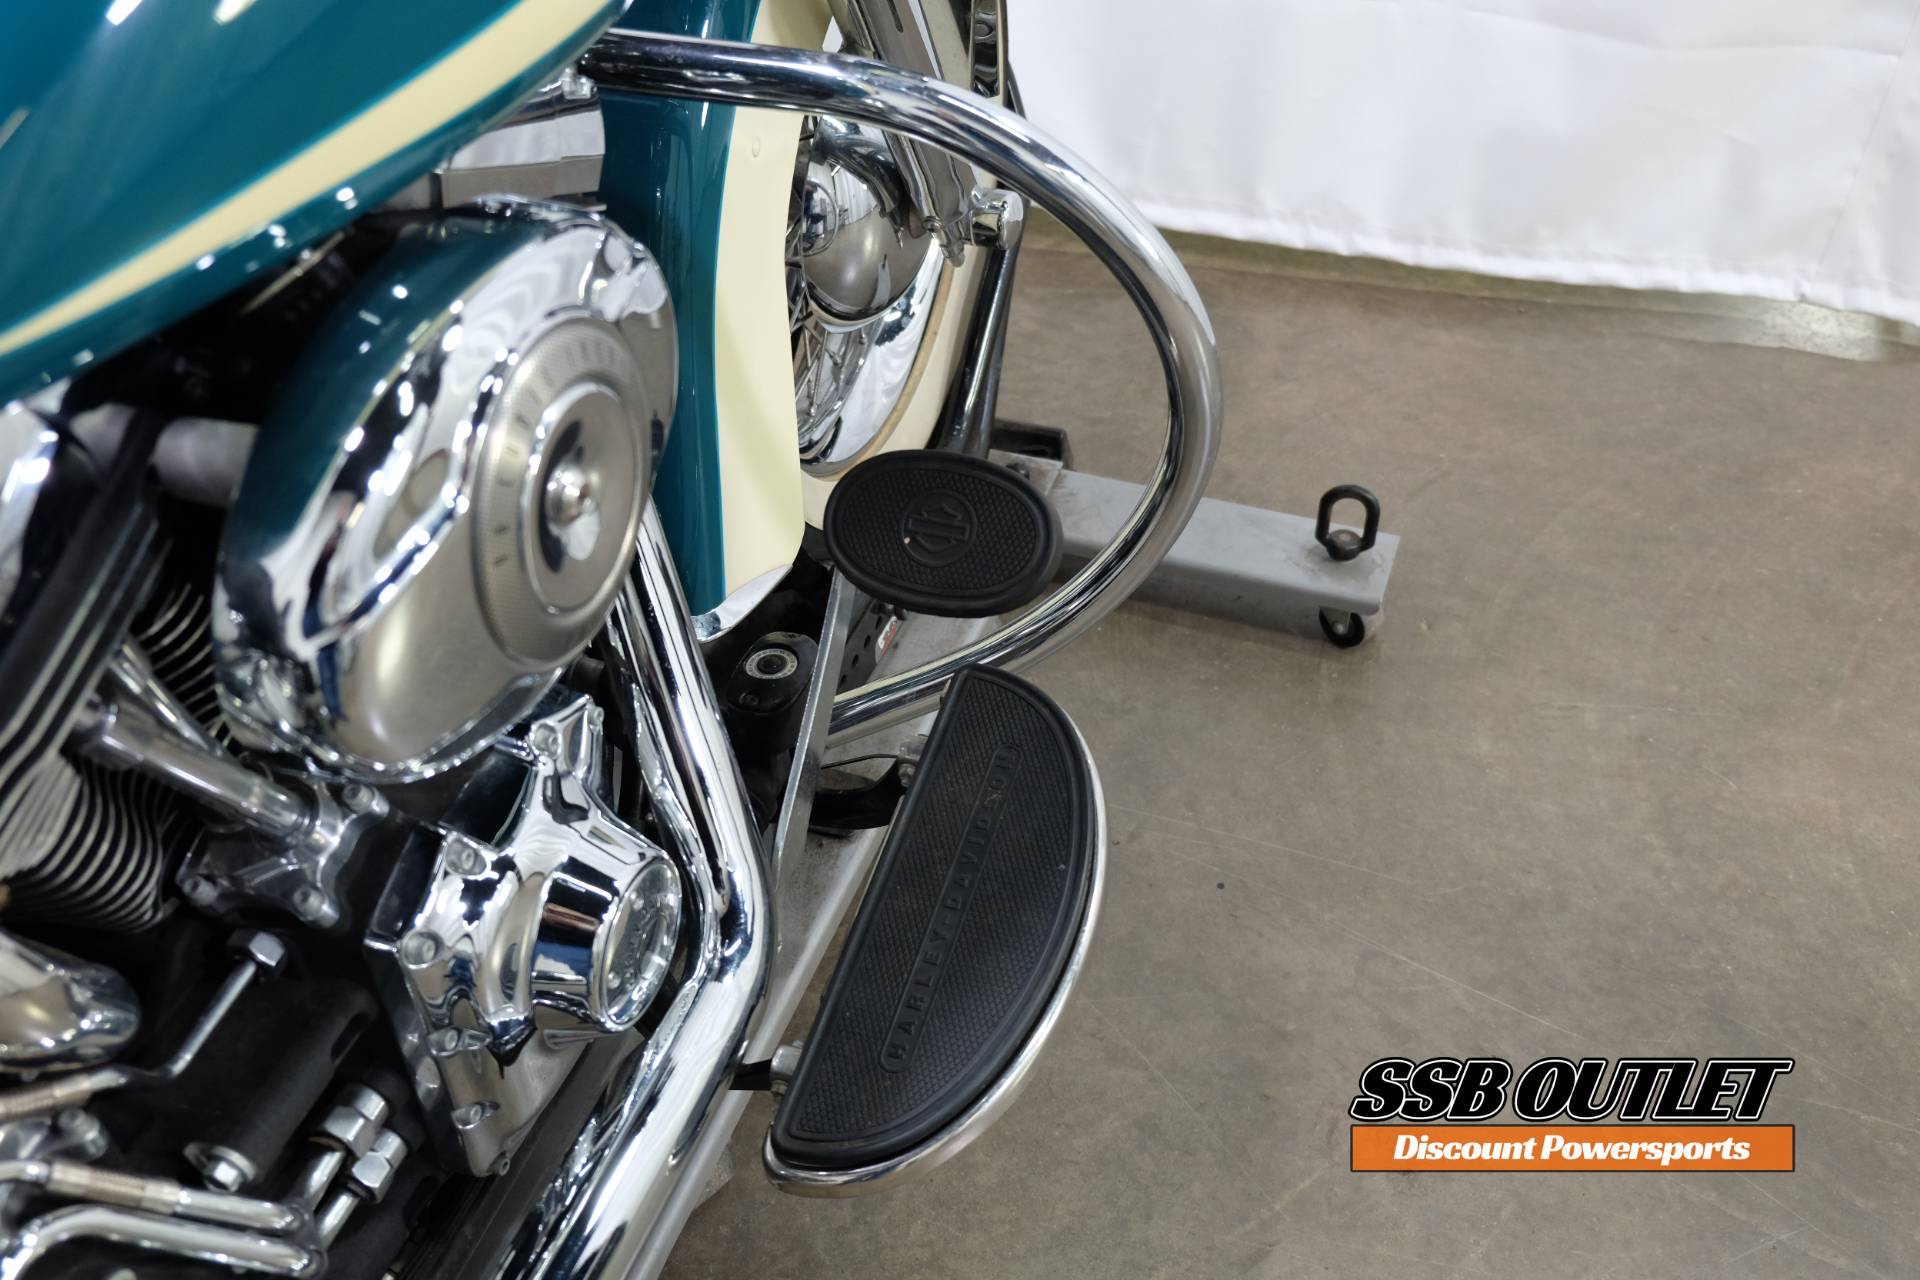 2009 Harley-Davidson Heritage Softail® Classic in Eden Prairie, Minnesota - Photo 11